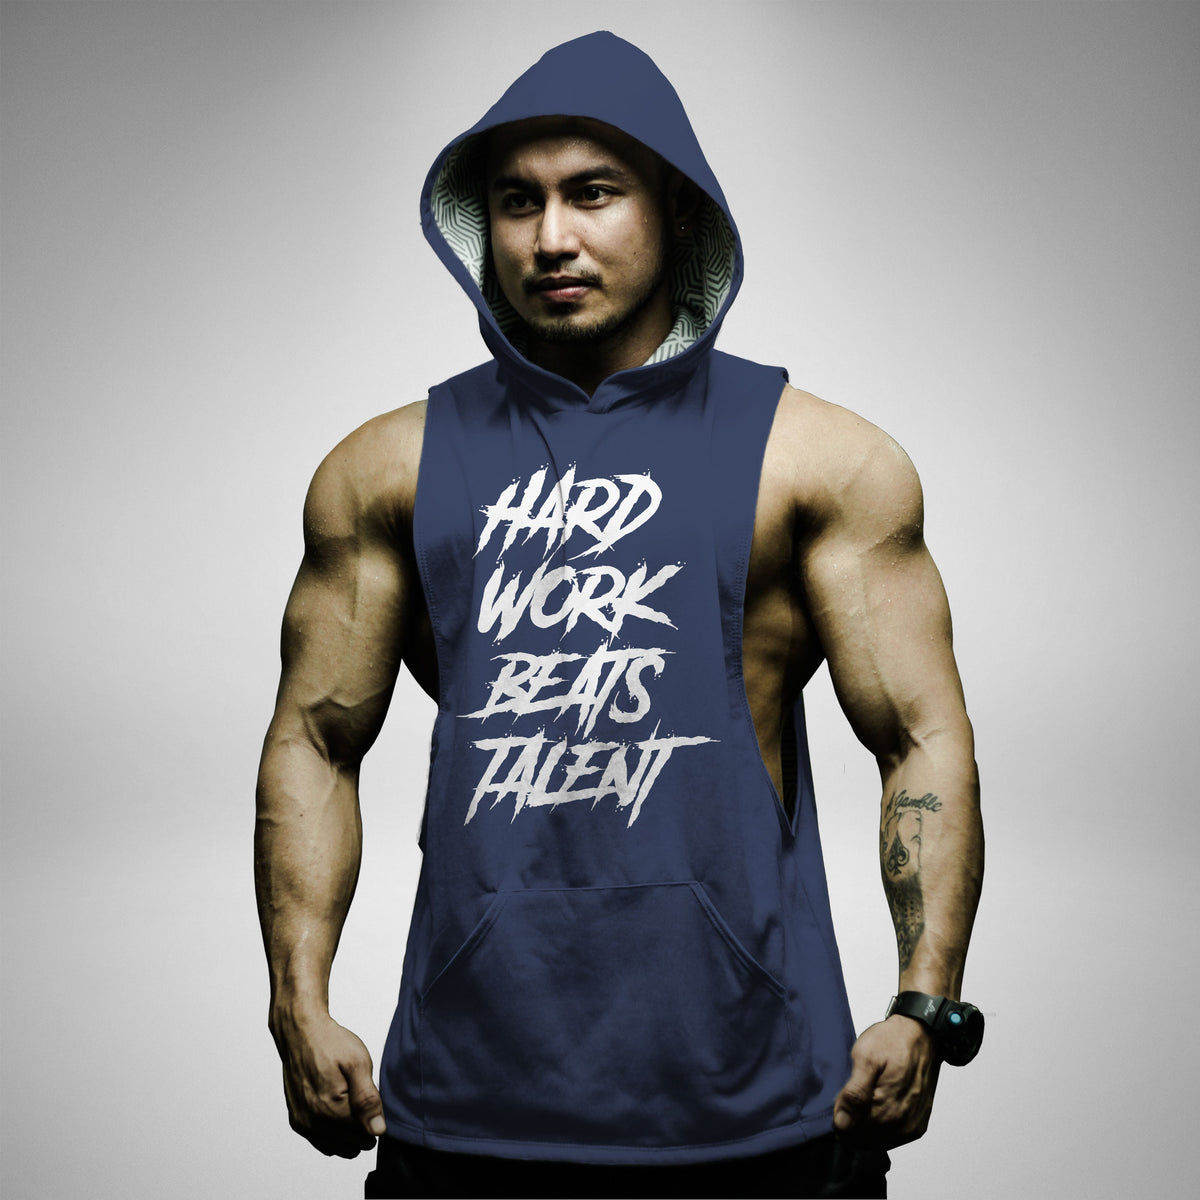 AH161 Hard Work Beats Talent Sleeveless Hoodie